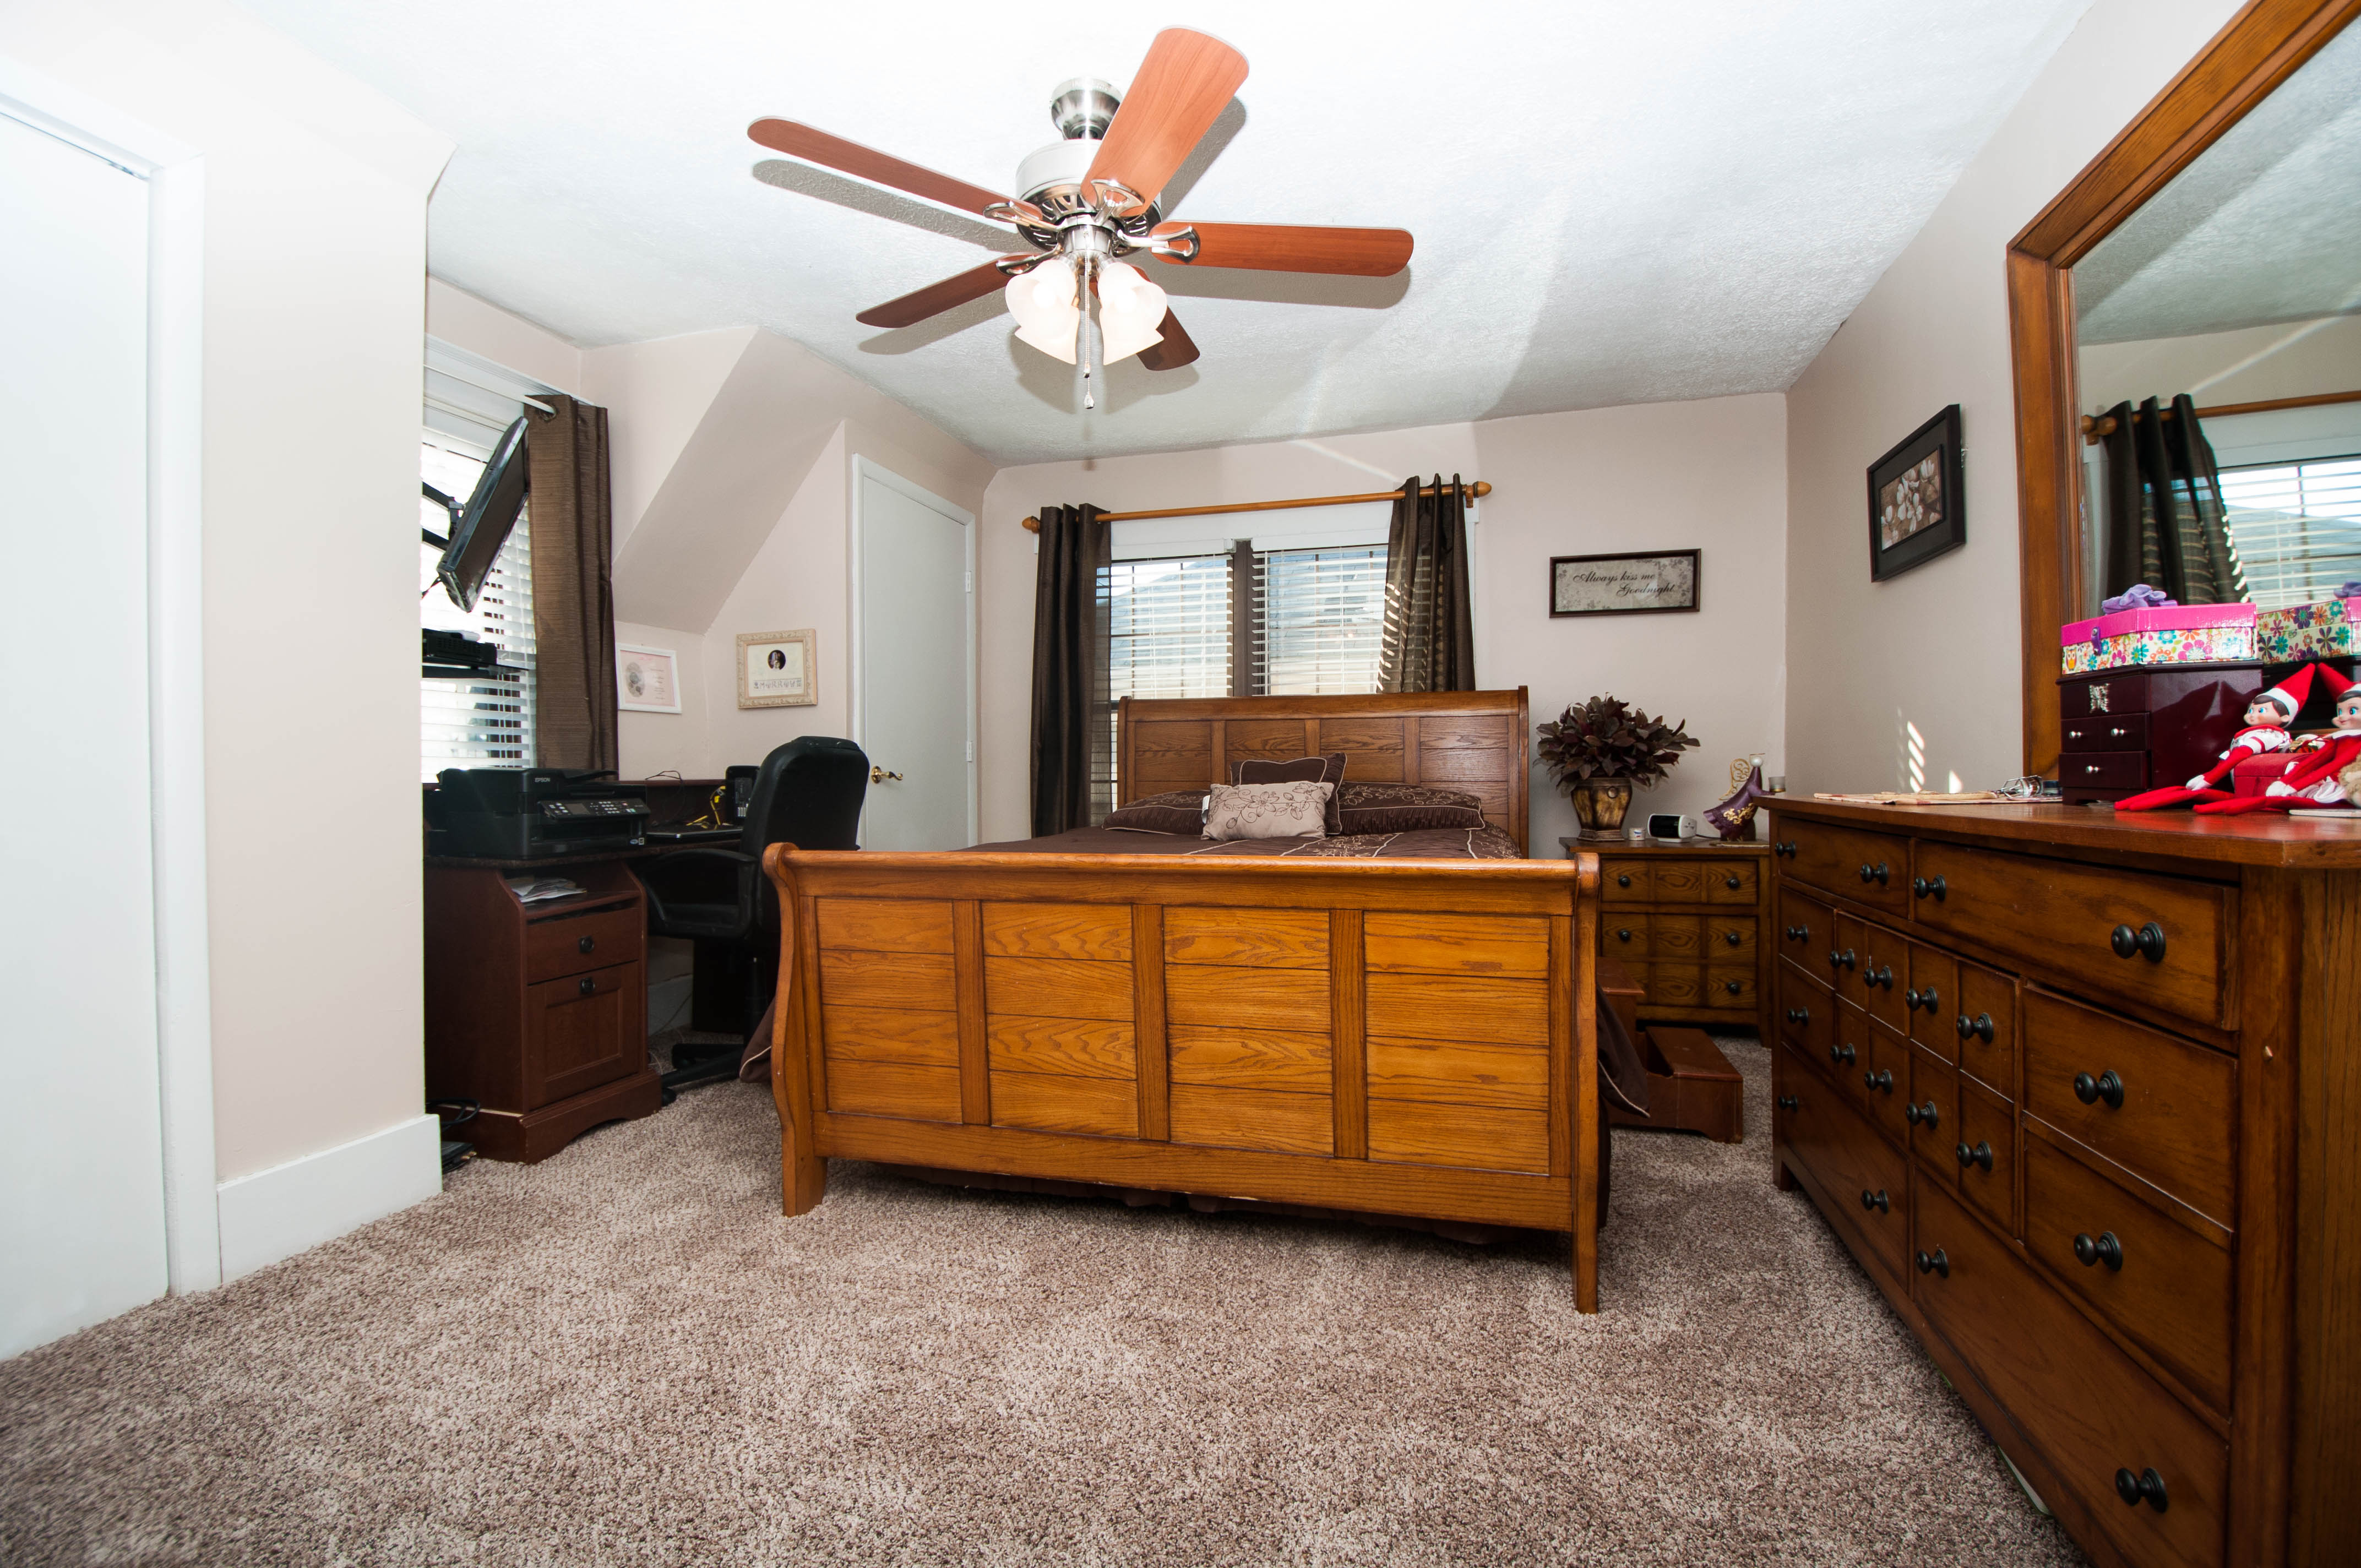 west portsmouth chat rooms 194 briggs rd west portsmouth west portsmouth 4 bedrooms and 3 full baths including master suite with dressing room this amazing home features spacious rooms.